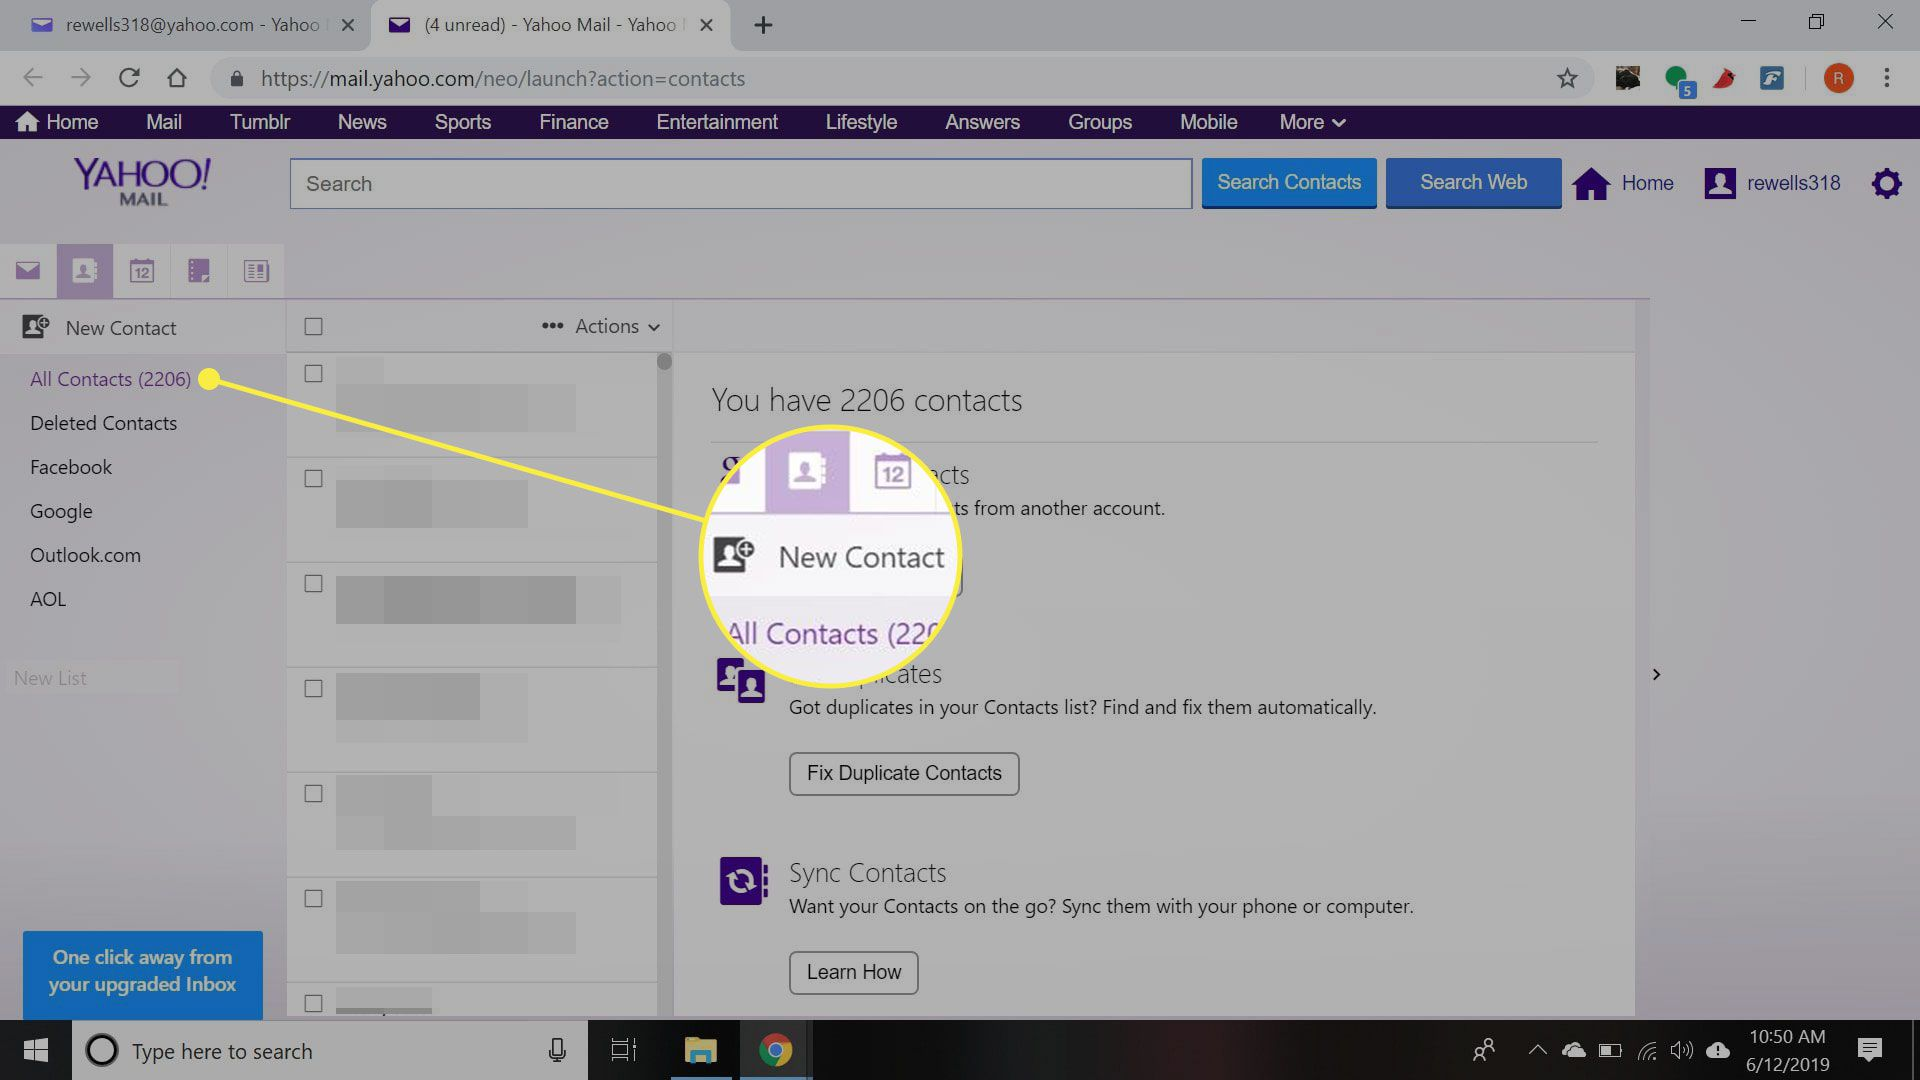 Yahoo Mail's Contacts page with the New Contact button highlighted